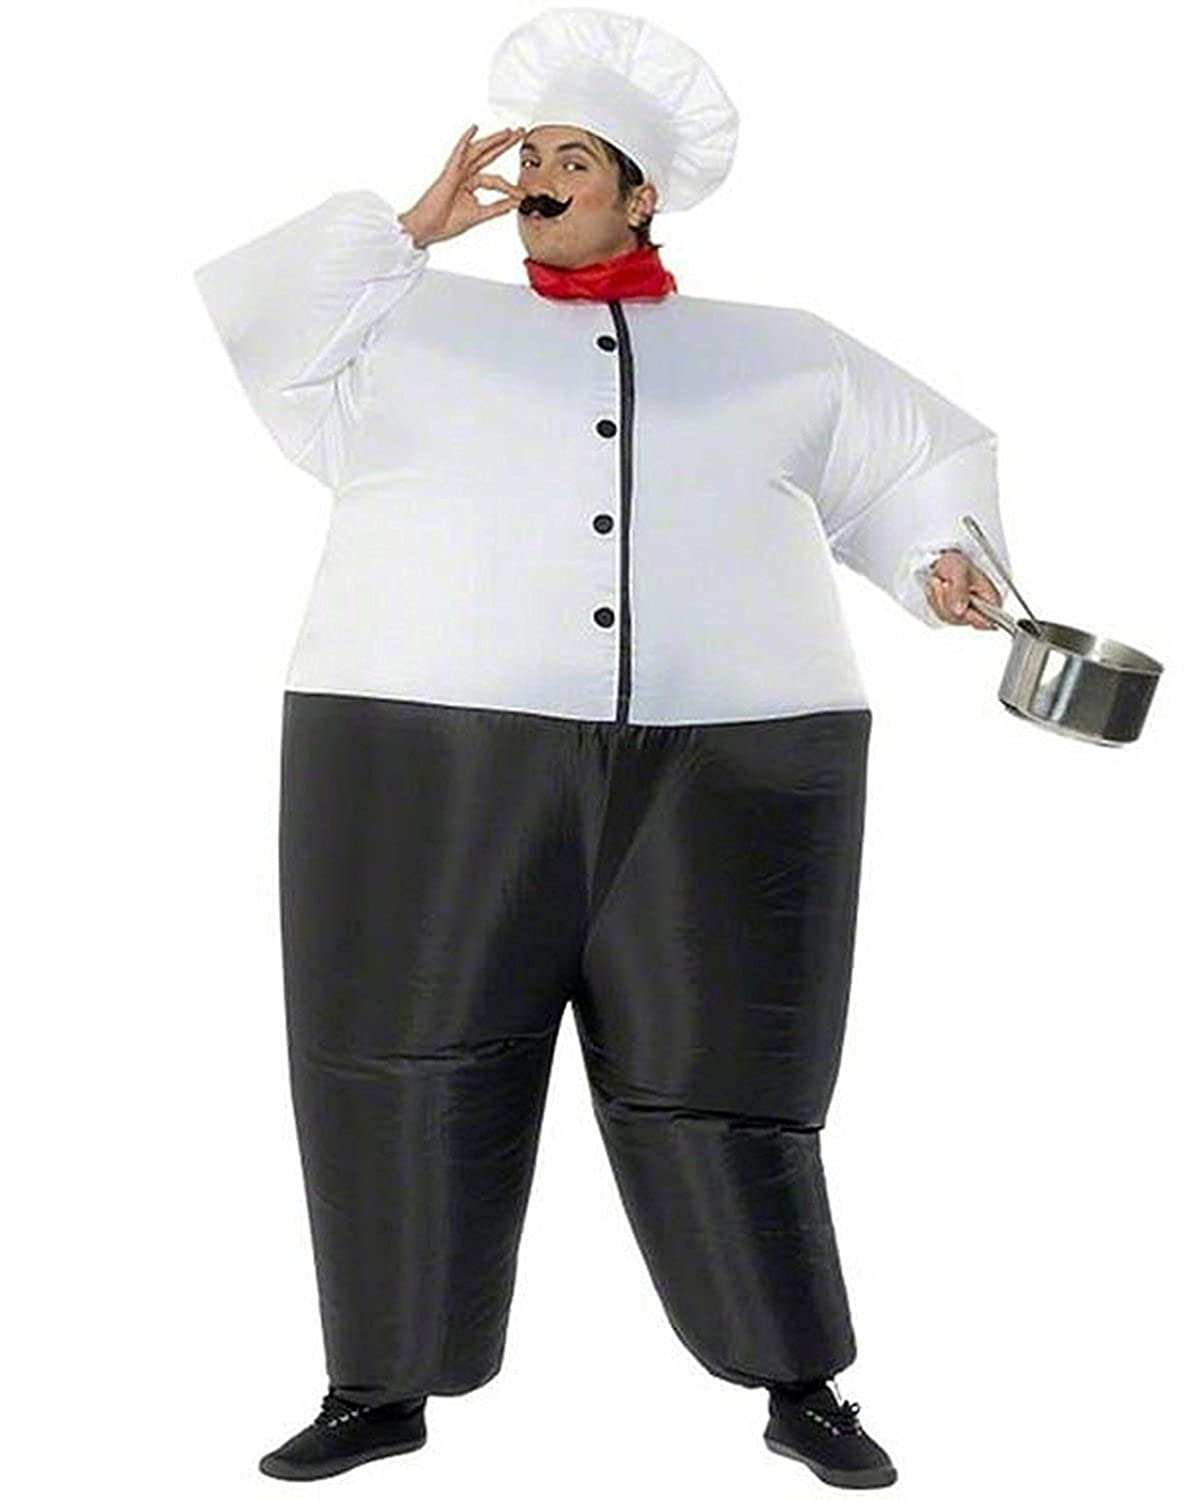 Wecloth Halloween Costume Inflatable Suit Master Chef Costume Funny Party Dress Cosplay Bodysuit White)